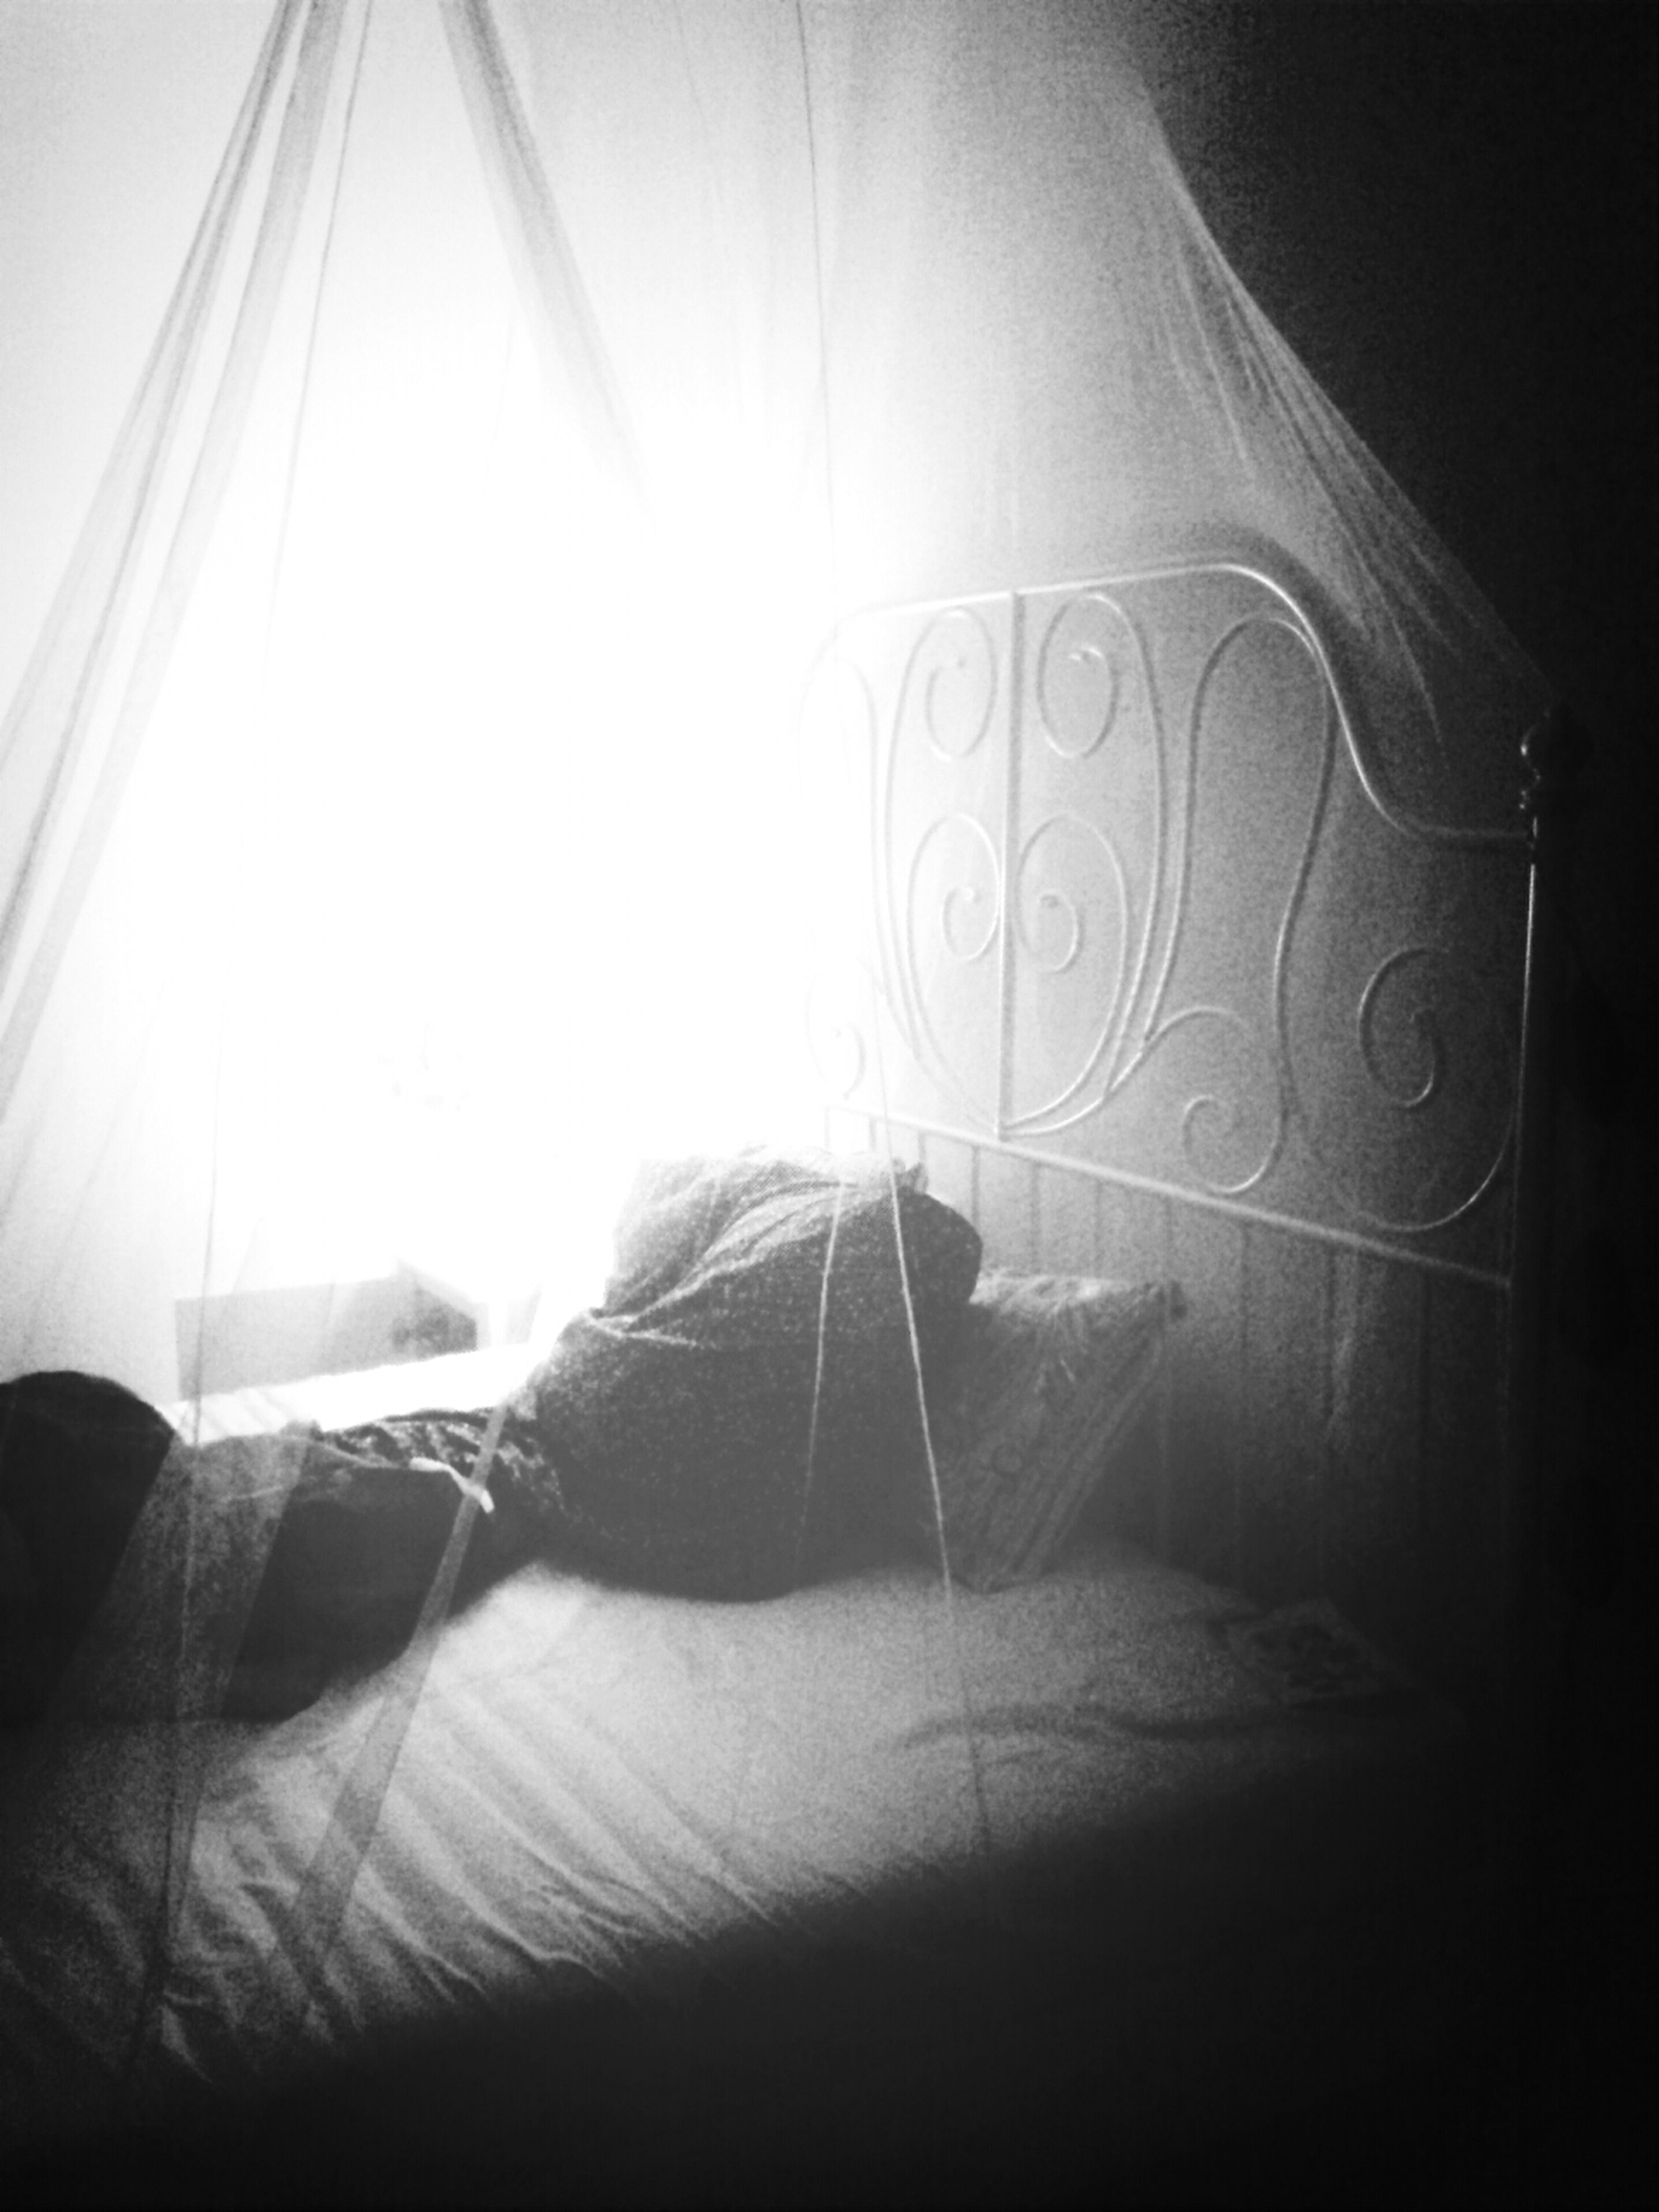 indoors, sunlight, close-up, home interior, part of, shadow, illuminated, light - natural phenomenon, lighting equipment, absence, copy space, dark, fabric, lens flare, electricity, day, textile